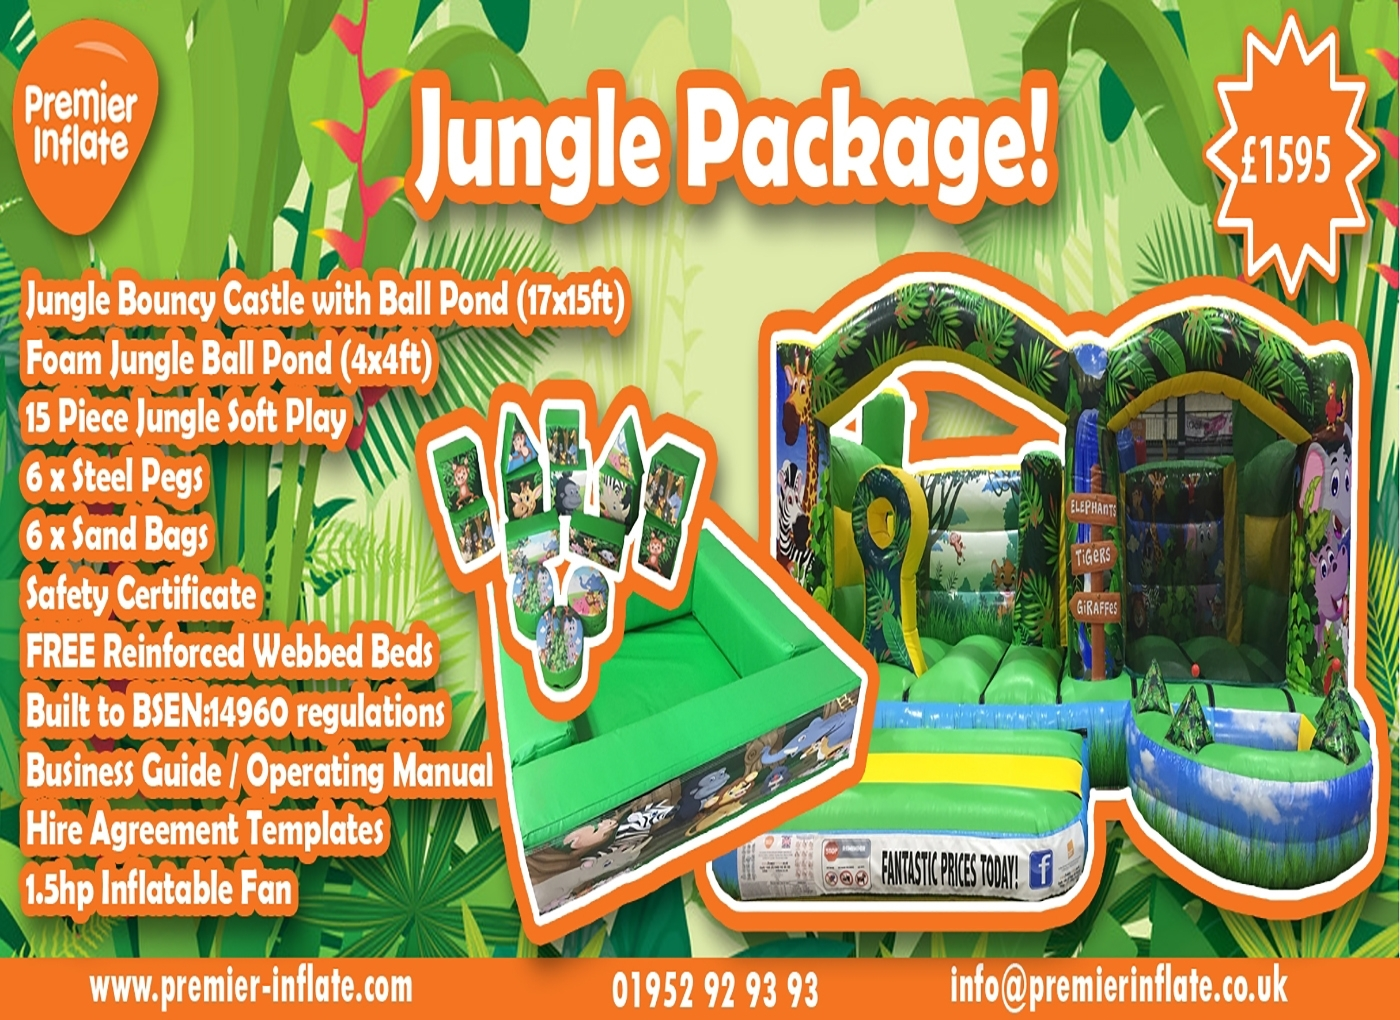 Jungle Package